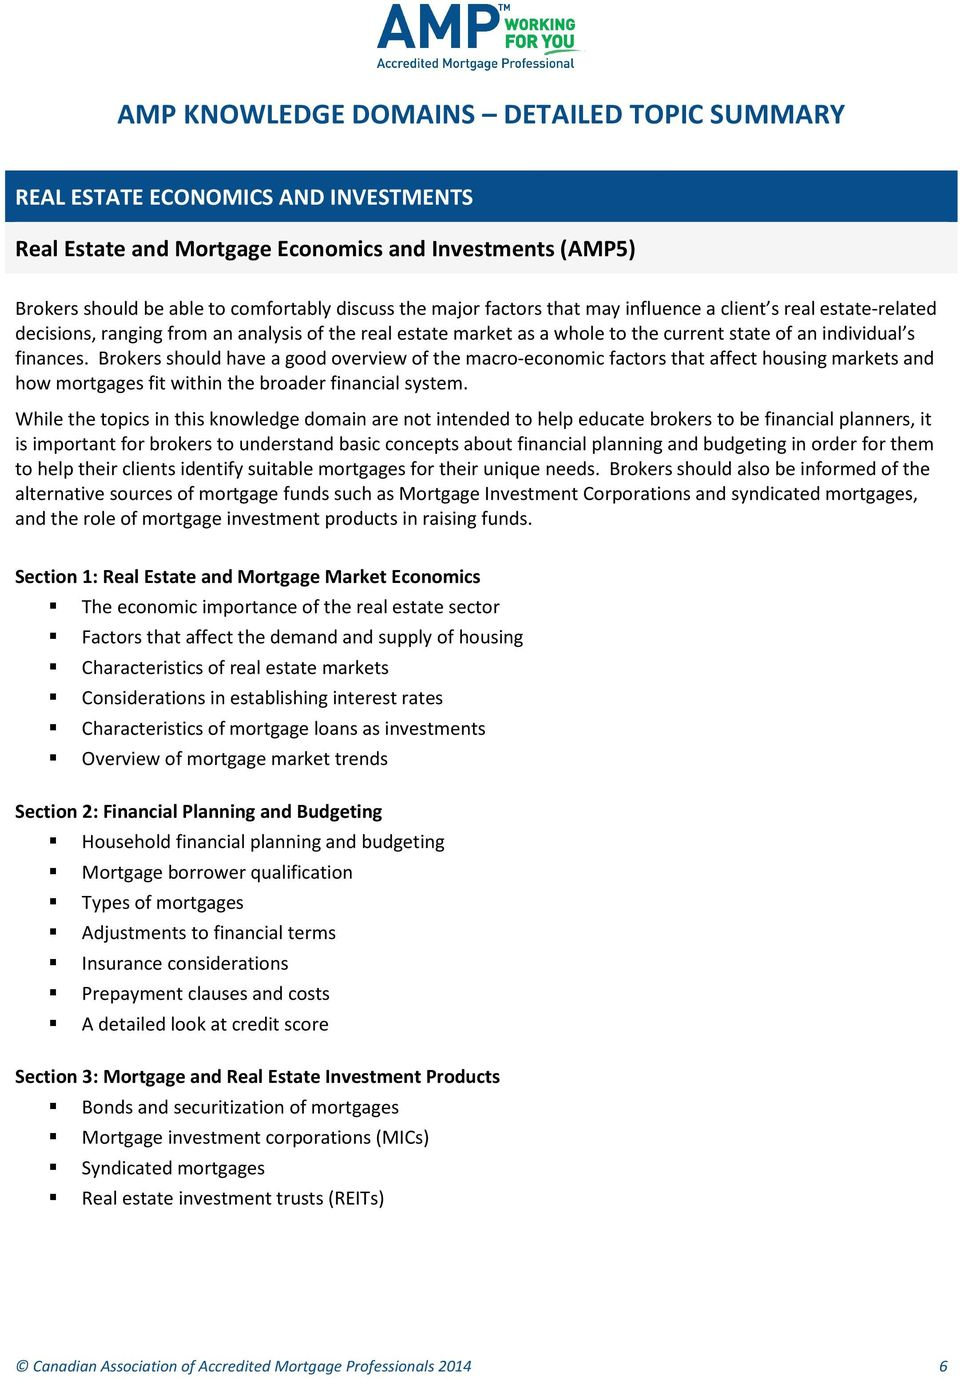 Brokers should have a good overview of the macro-economic factors that affect housing markets and how mortgages fit within the broader financial system.